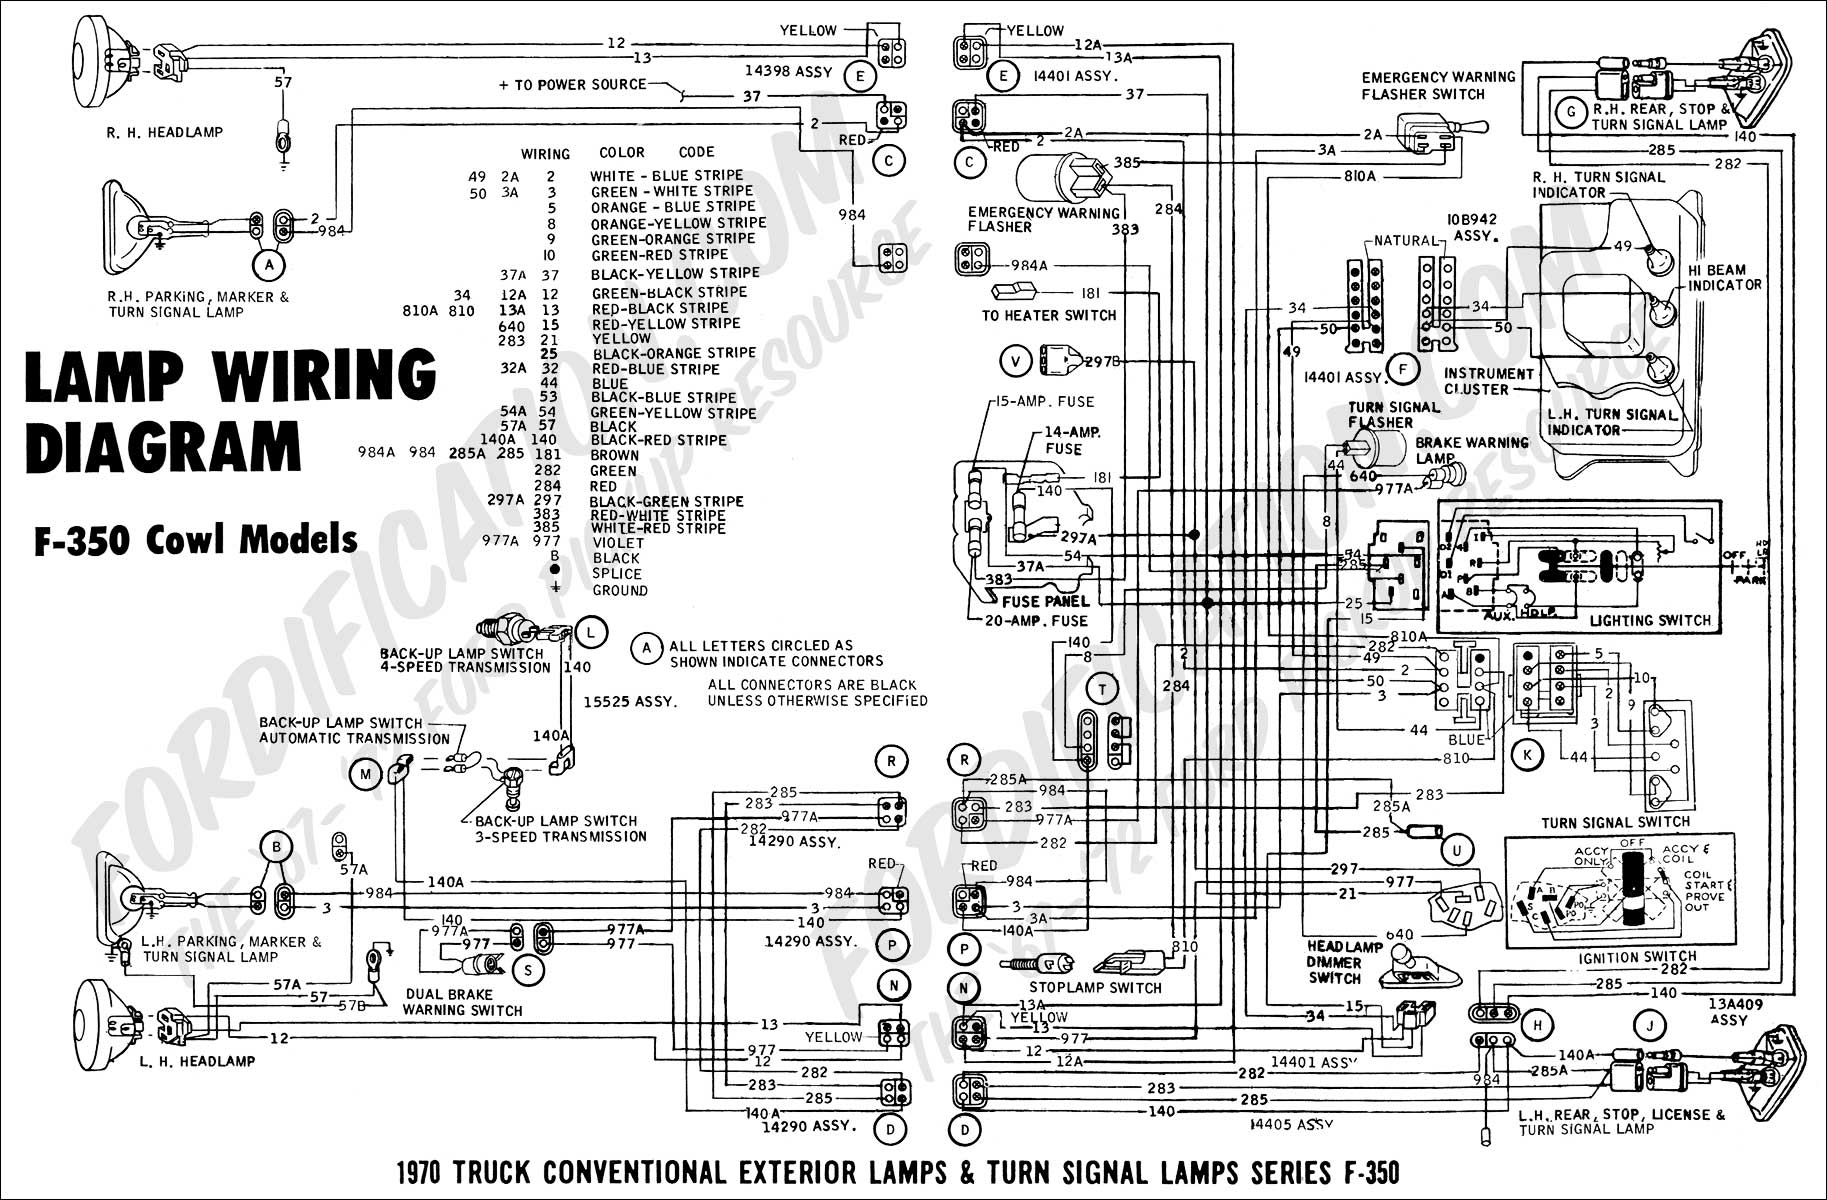 hight resolution of 1995 ford econoline 250 van fuse box wiring diagram explained 2006 ford f350 fuse box diagram 2001 ford e350 fuse panel diagram